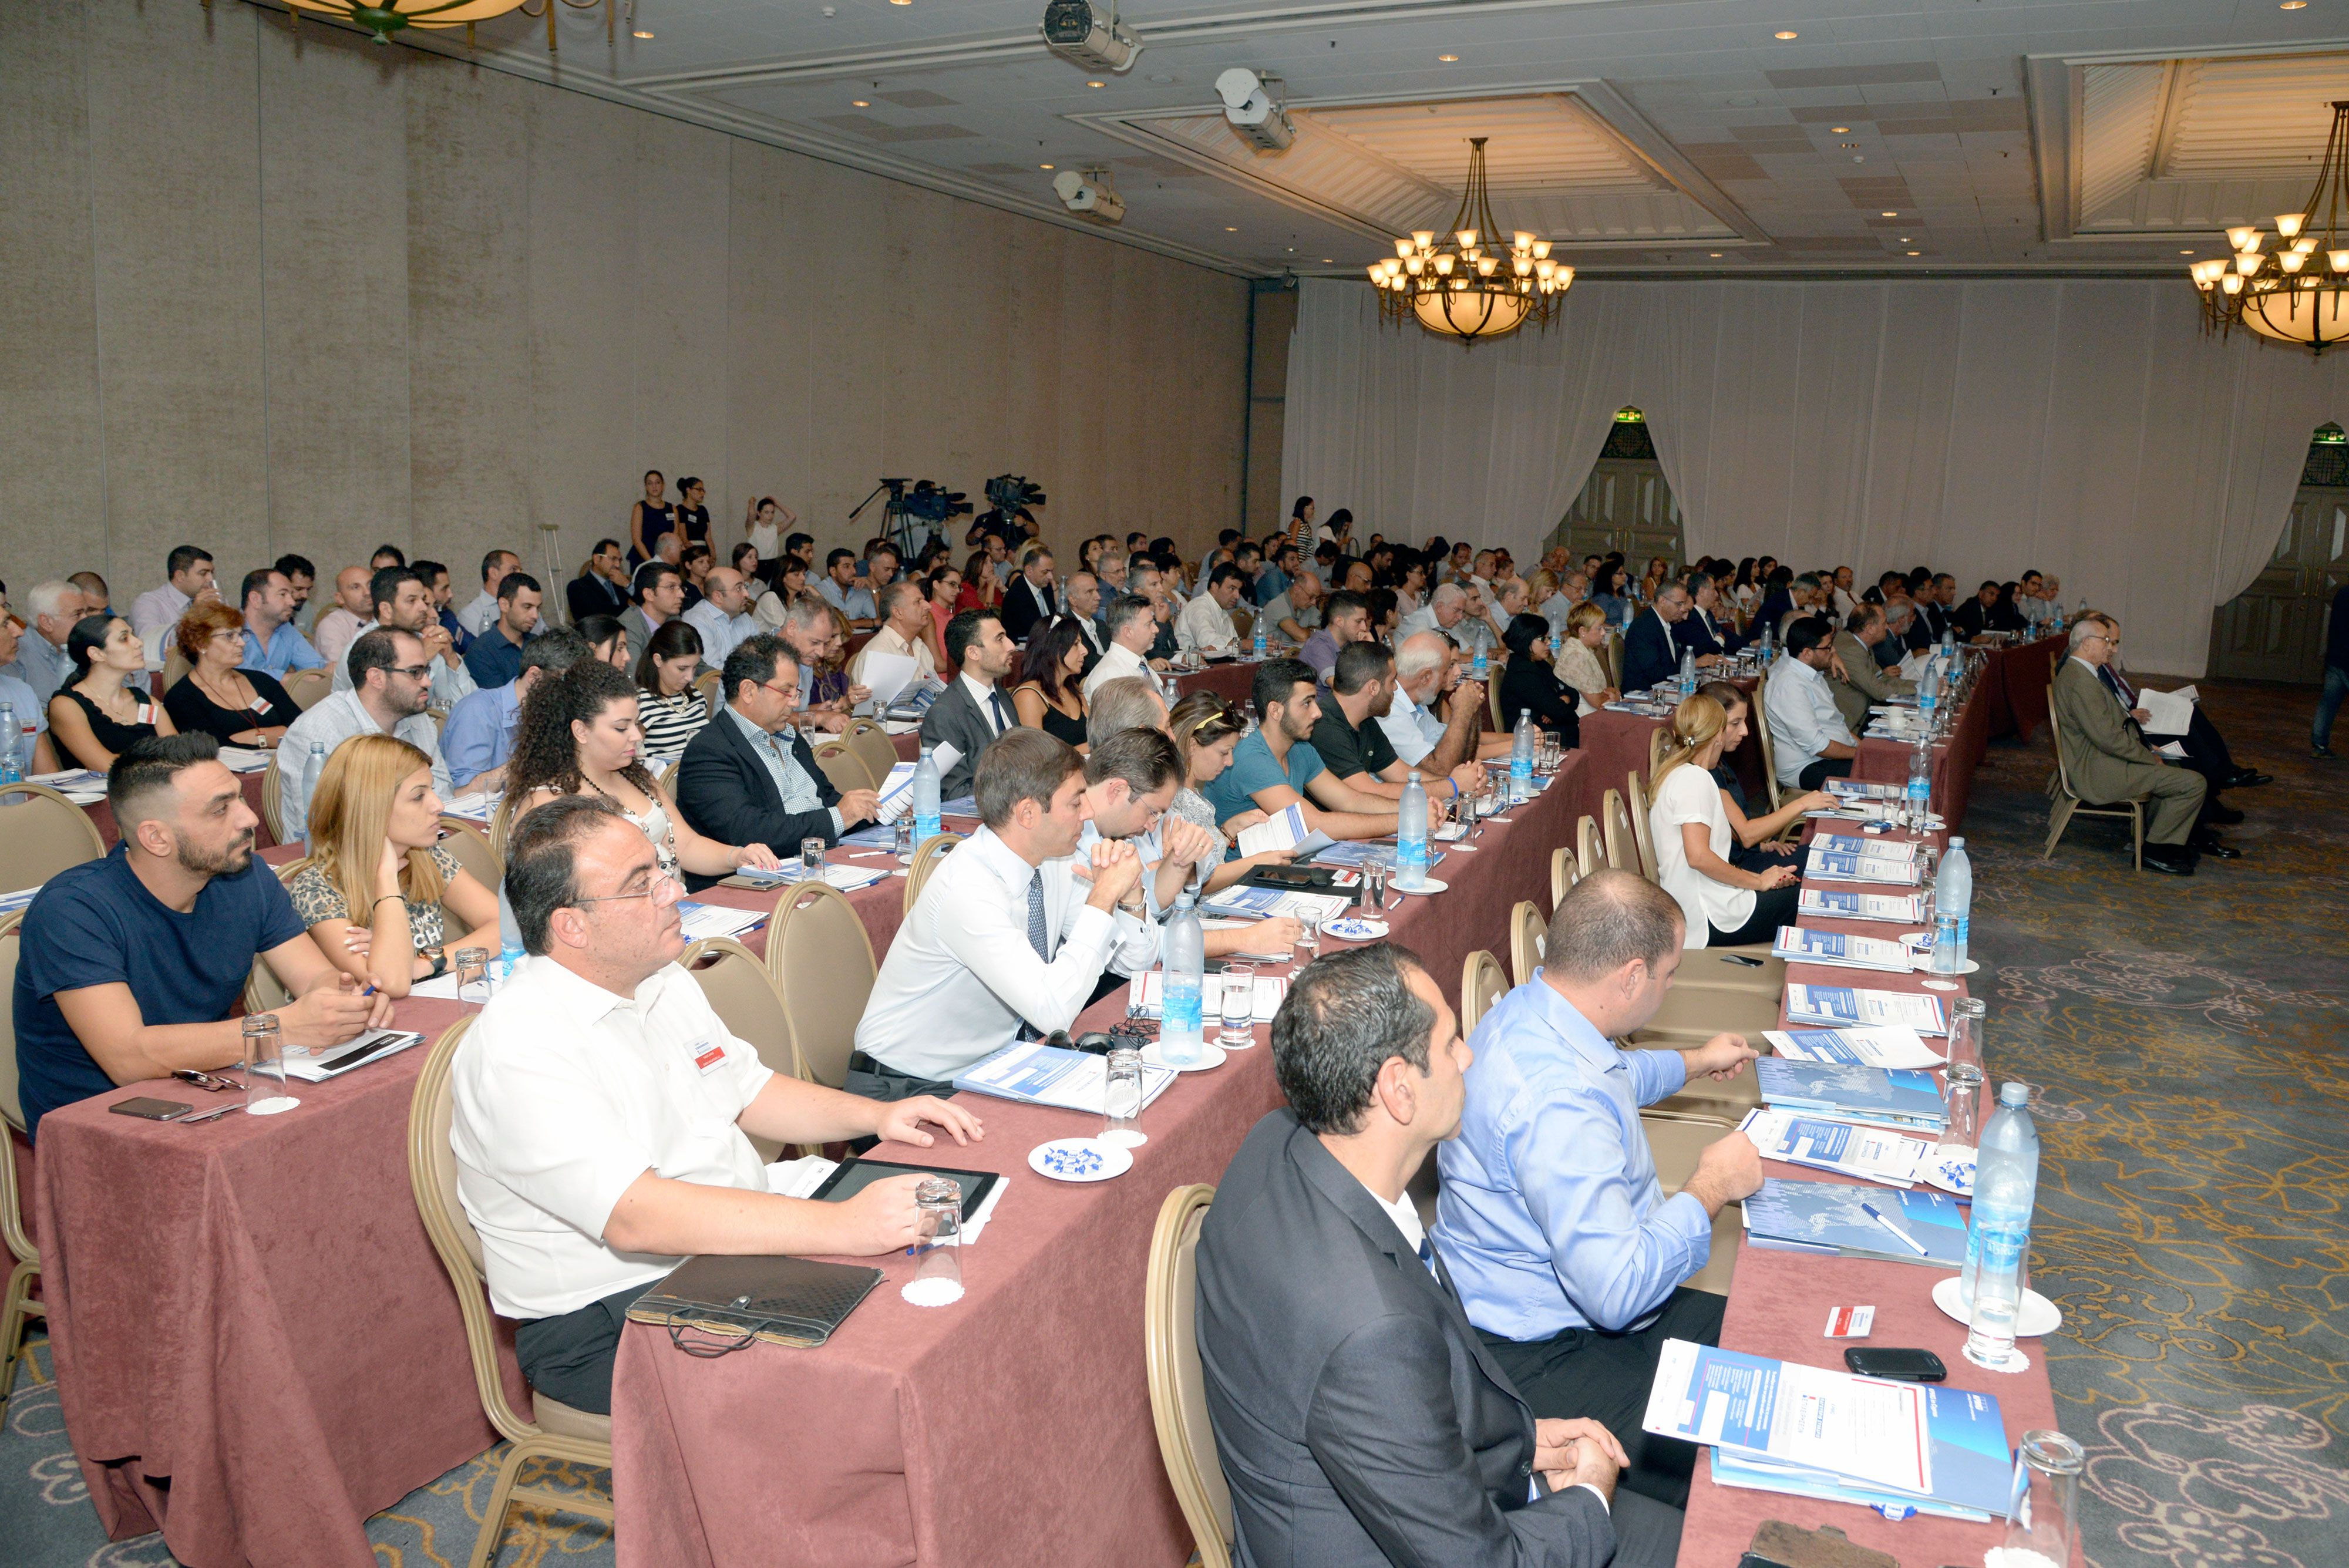 Attendees in conference